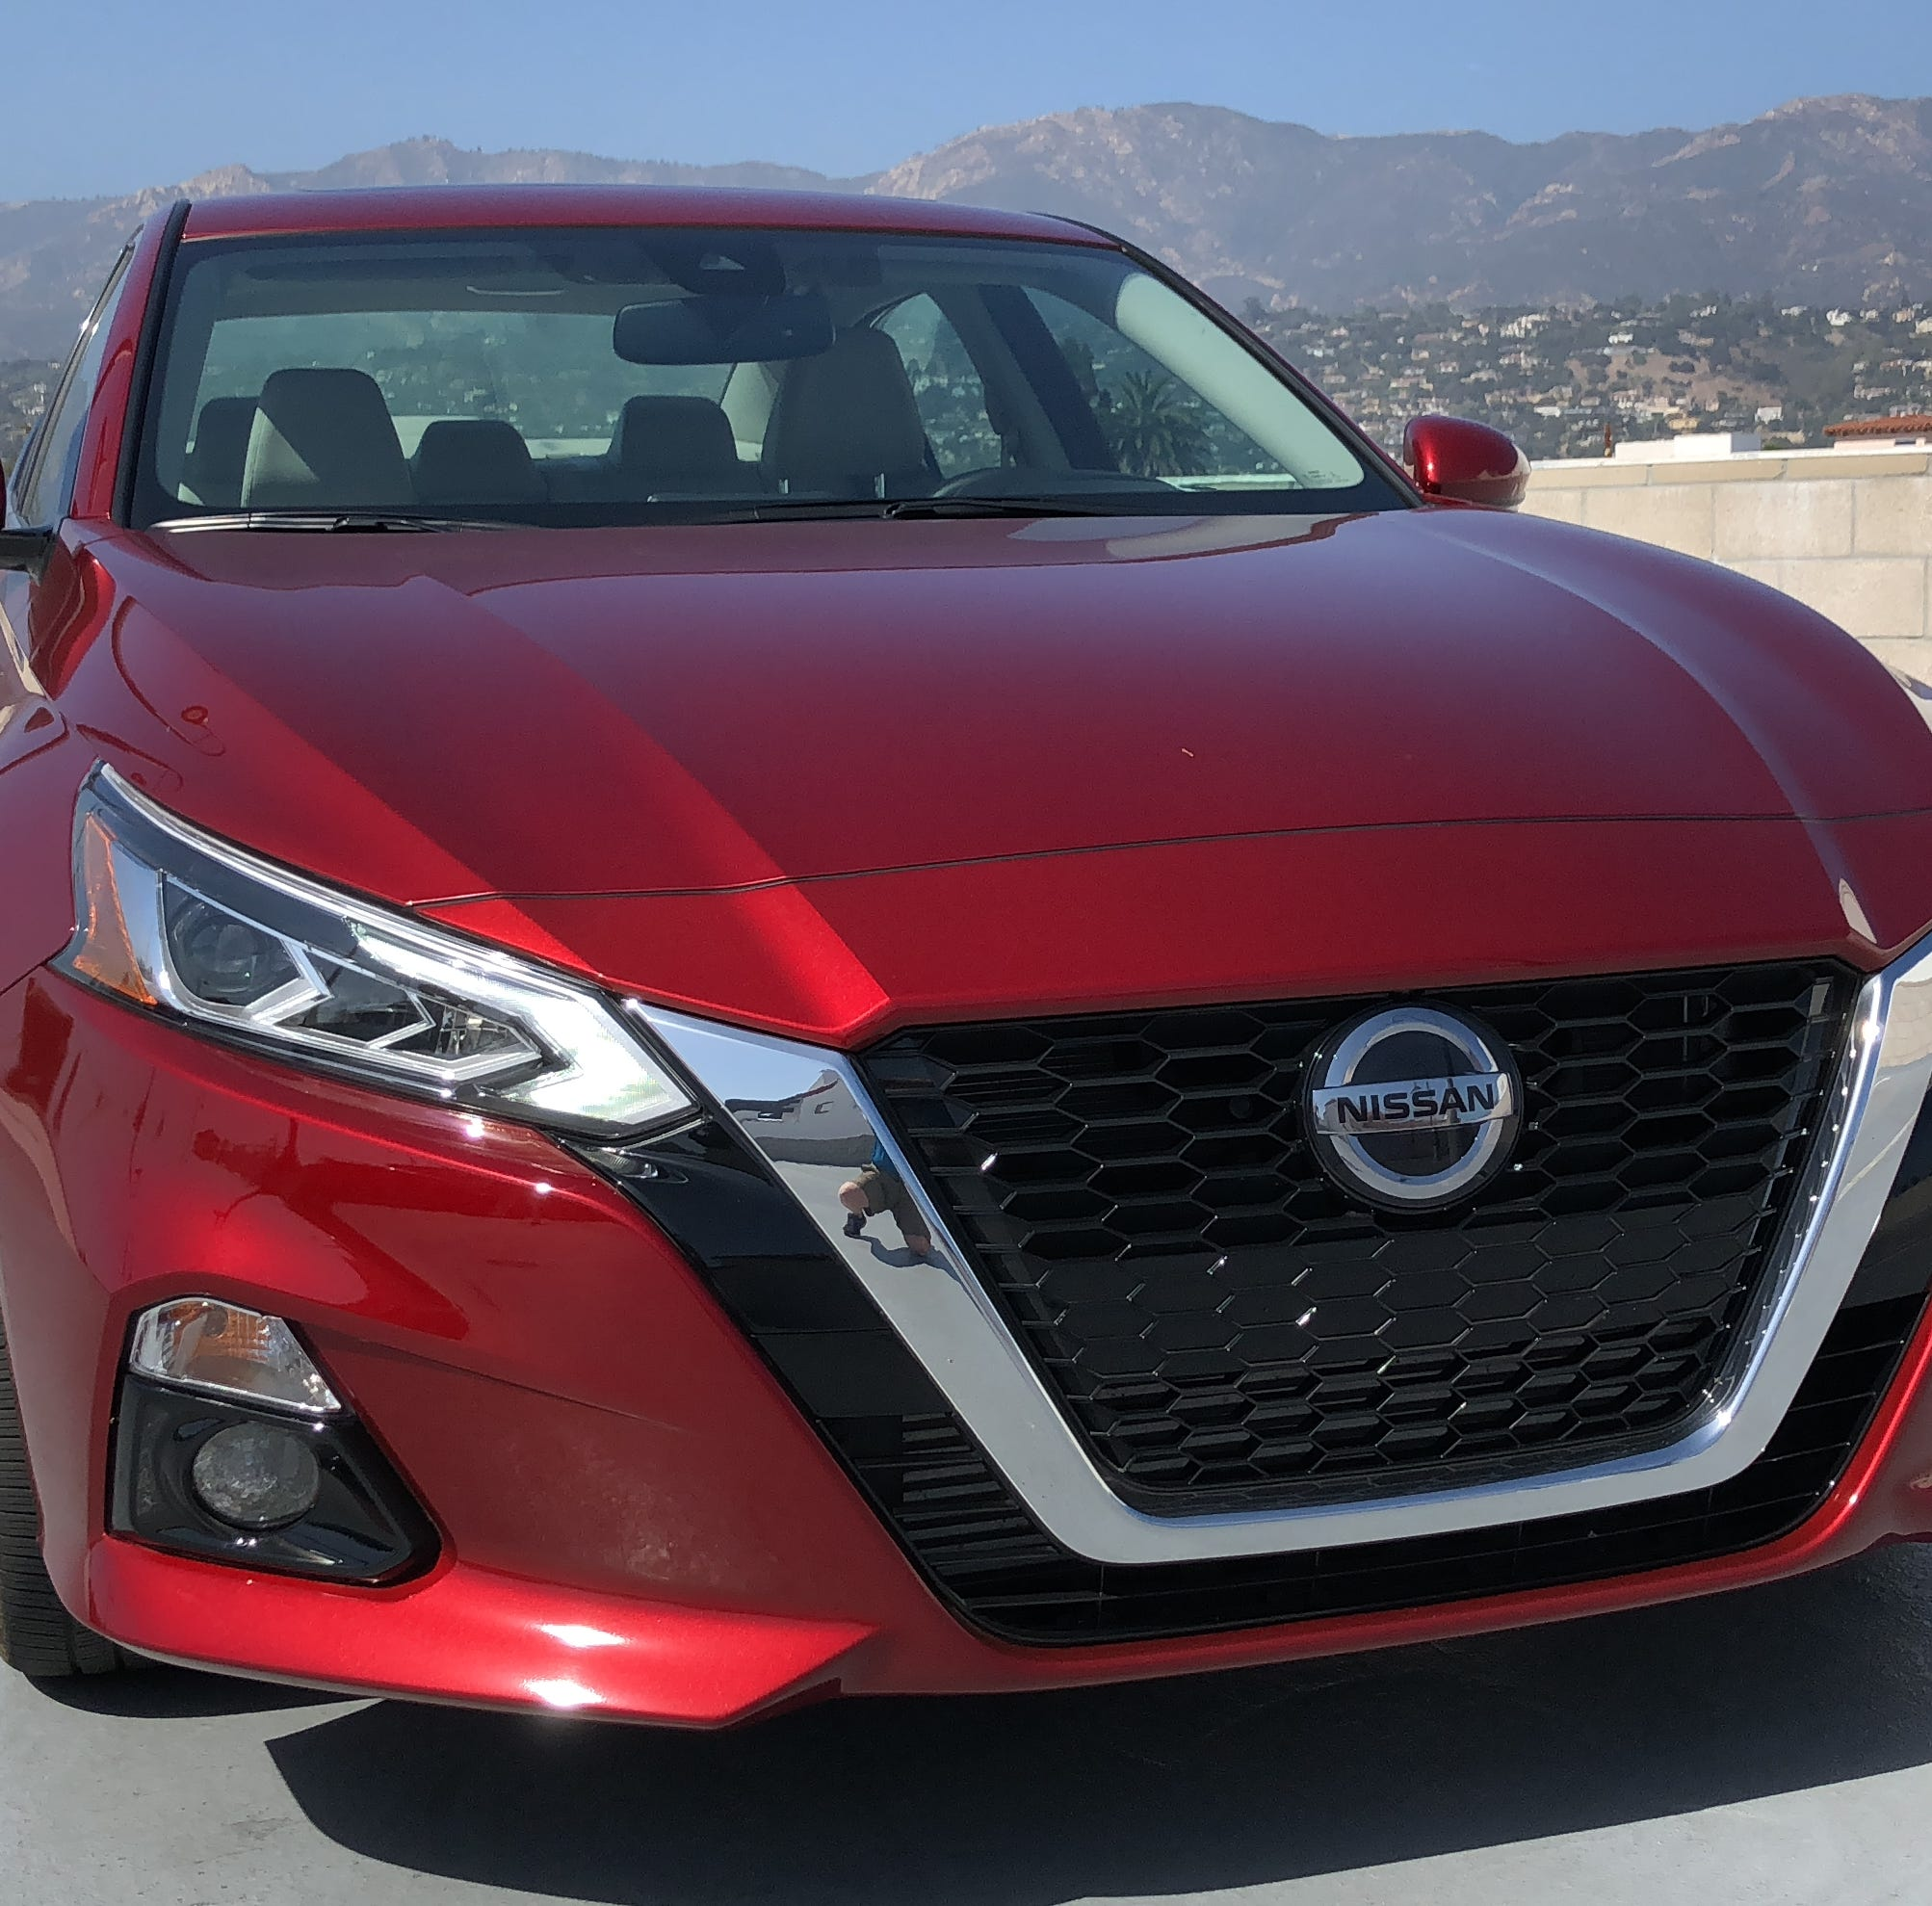 7 reasons buyers will want the 2019 Nissan Altima